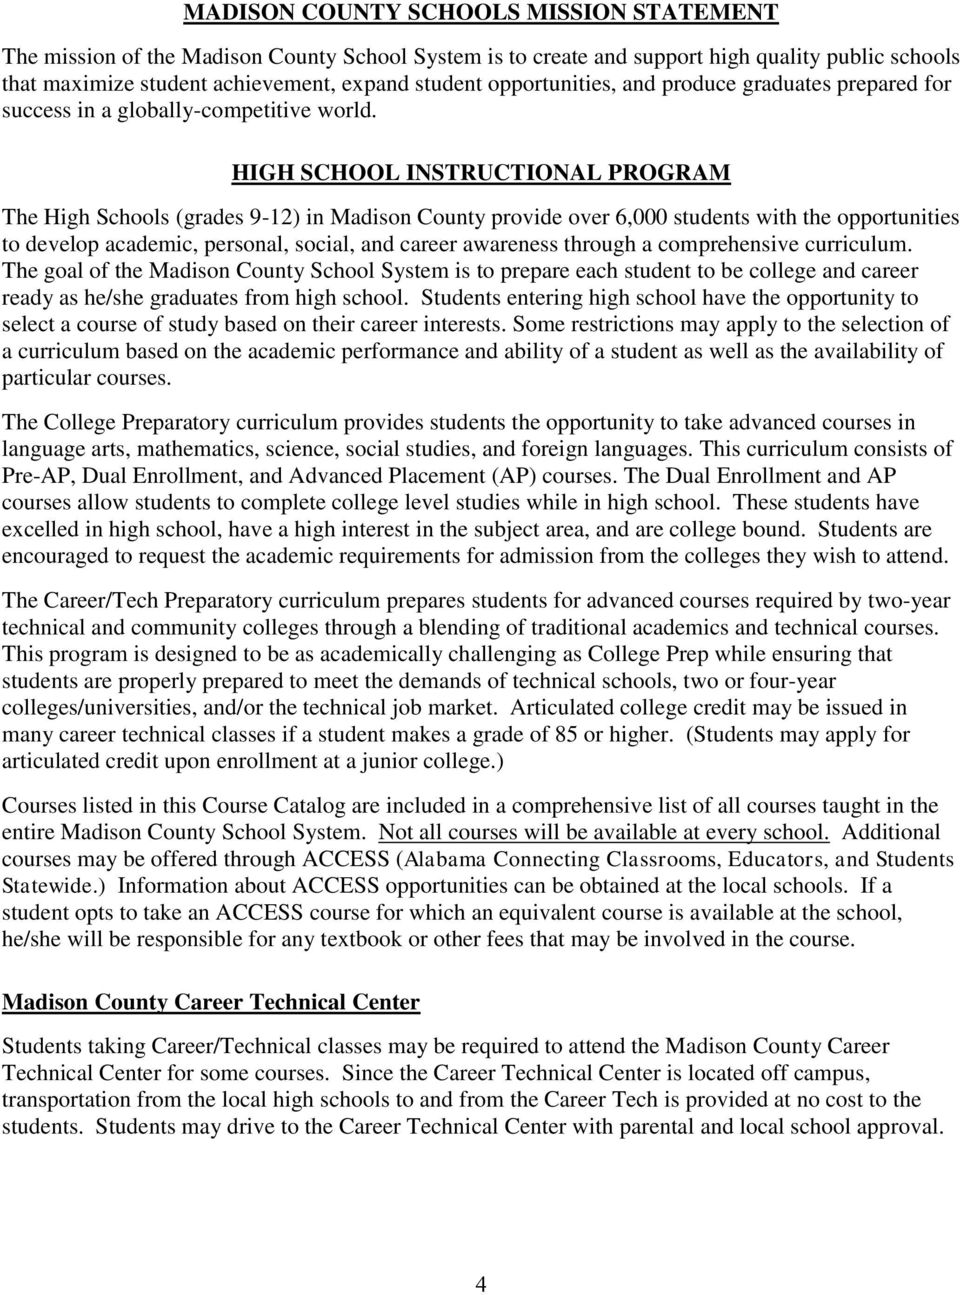 HIGH SCHOOL INSTRUCTIONAL PROGRAM The High Schools (grades 9-12) in Madison County provide over 6,000 students with the opportunities to develop academic, personal, social, and career awareness